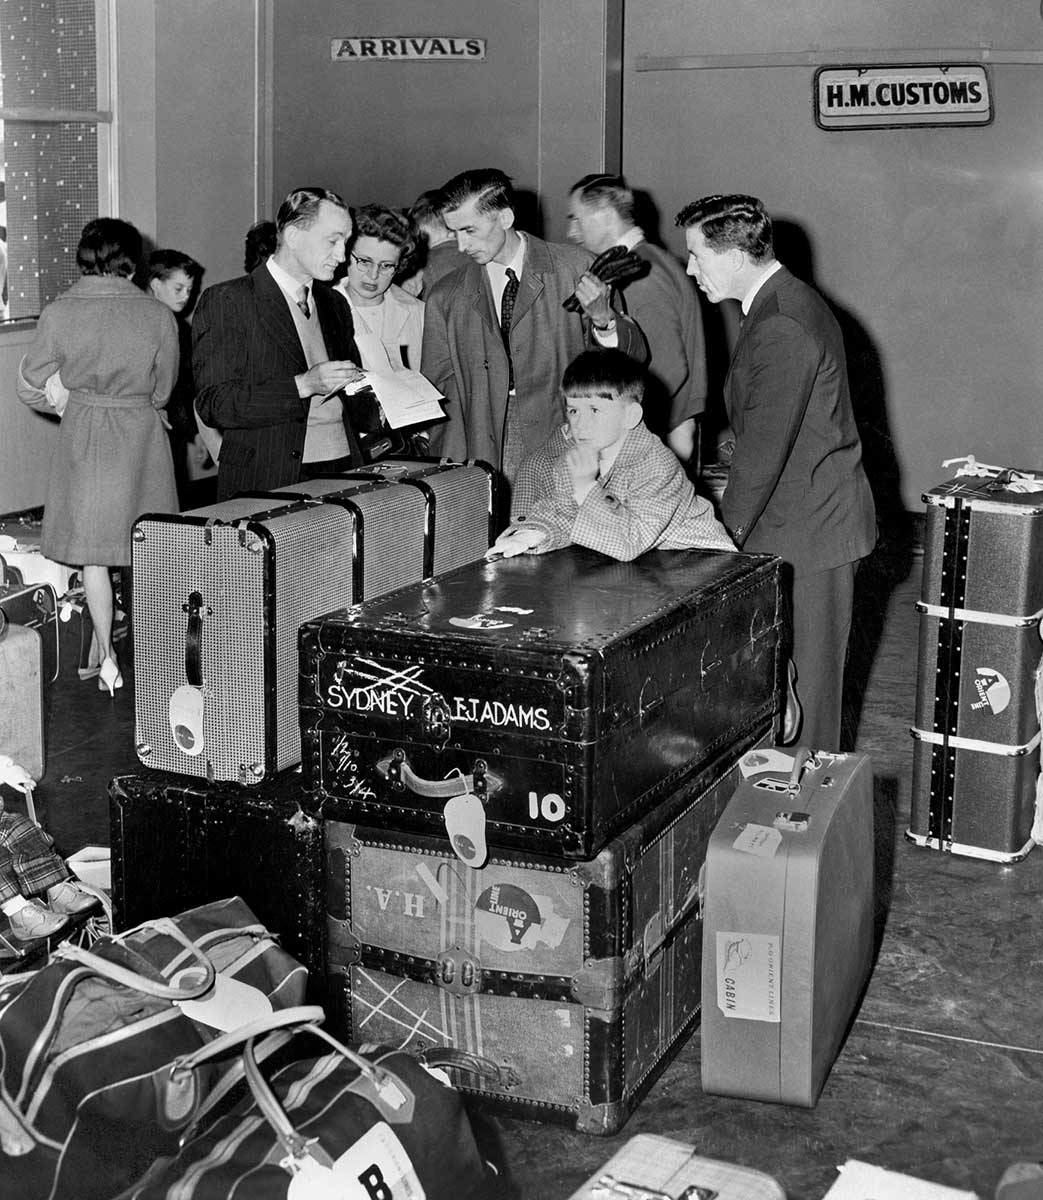 A group of people are standing around luggage. There is an 'ARRIVAL' sign and 'H.M customs' signs on the wall. - click to view larger image